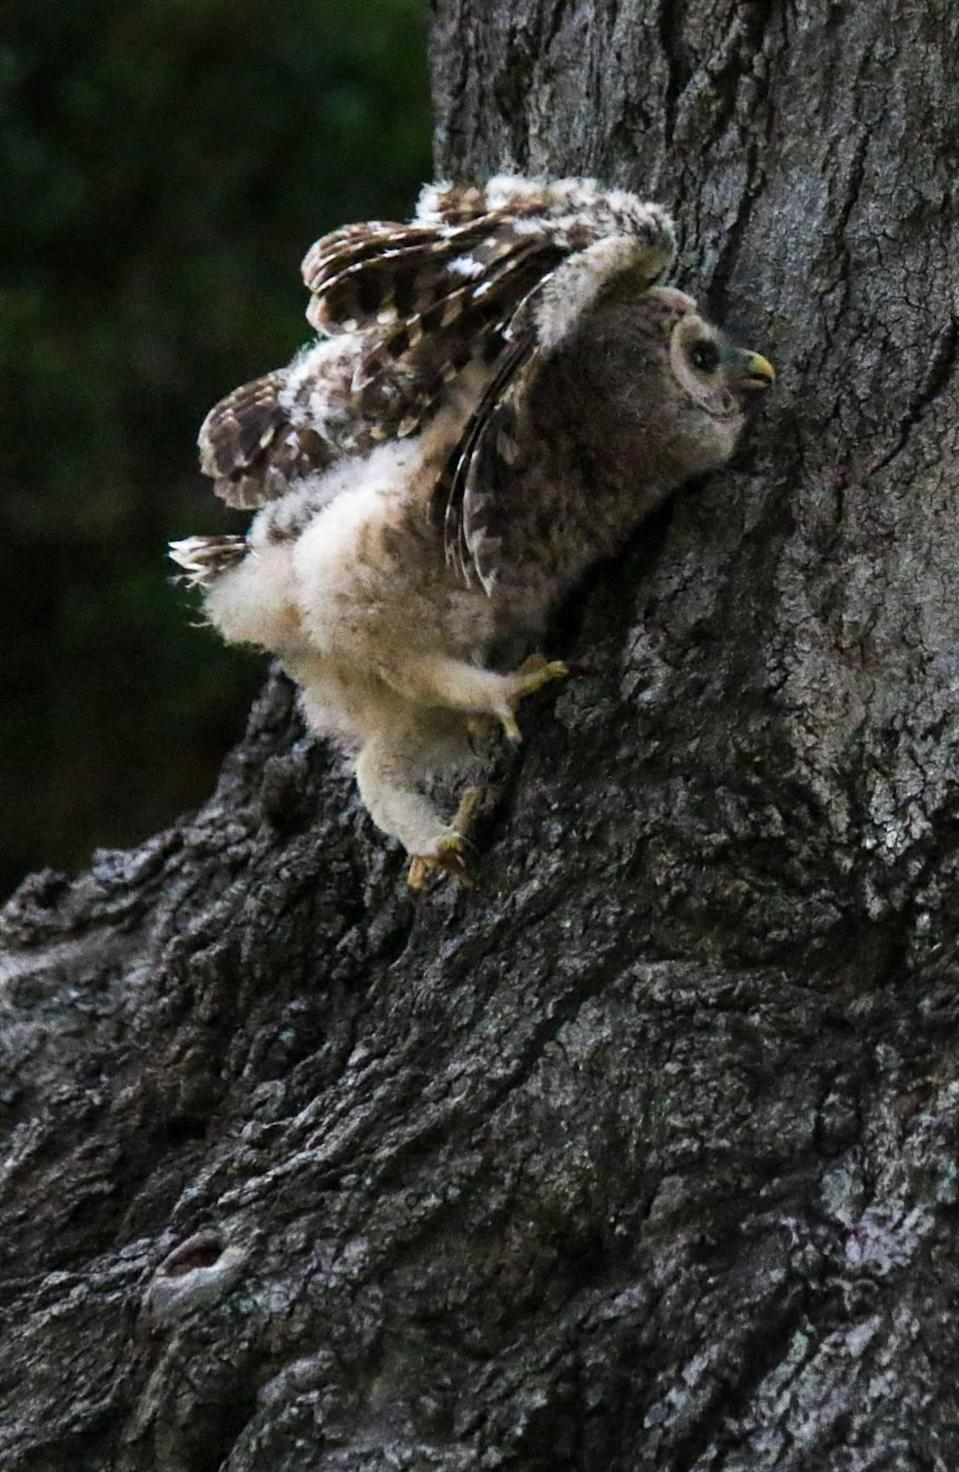 A baby Barred owl tries to climb up a tree to get back to its nest in a tree in Melrose Heights. Neighbors have been keeping an eye on the bird, who is too young to fly, and have made a nest for it, a little lower to the ground.